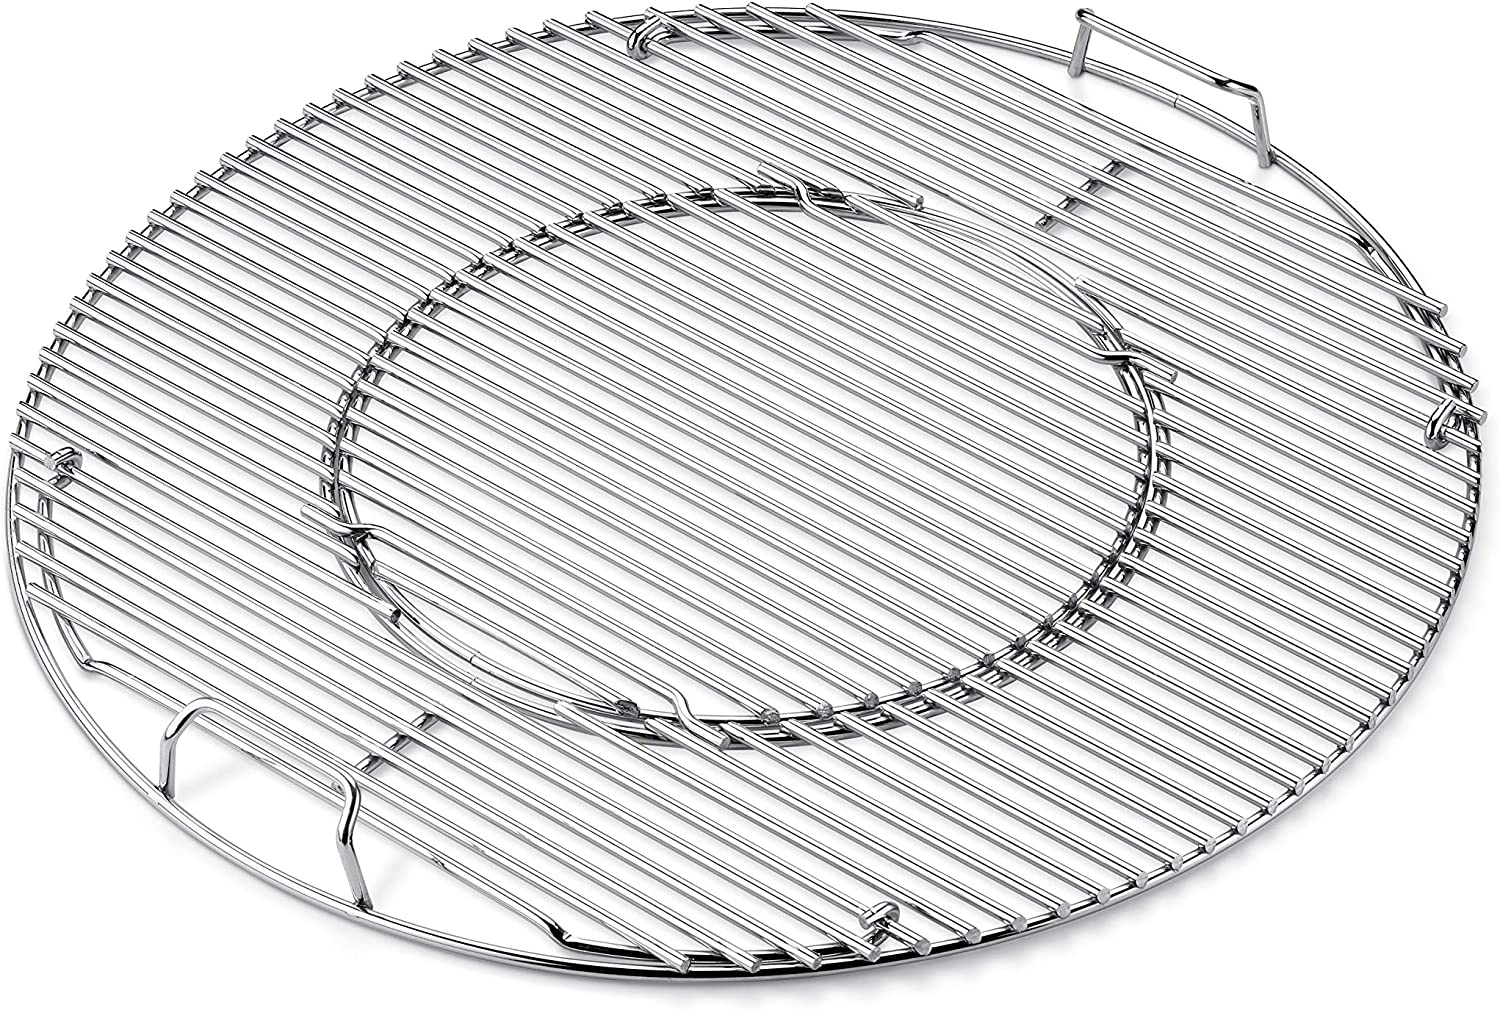 Best outdoor Charcoal Grate